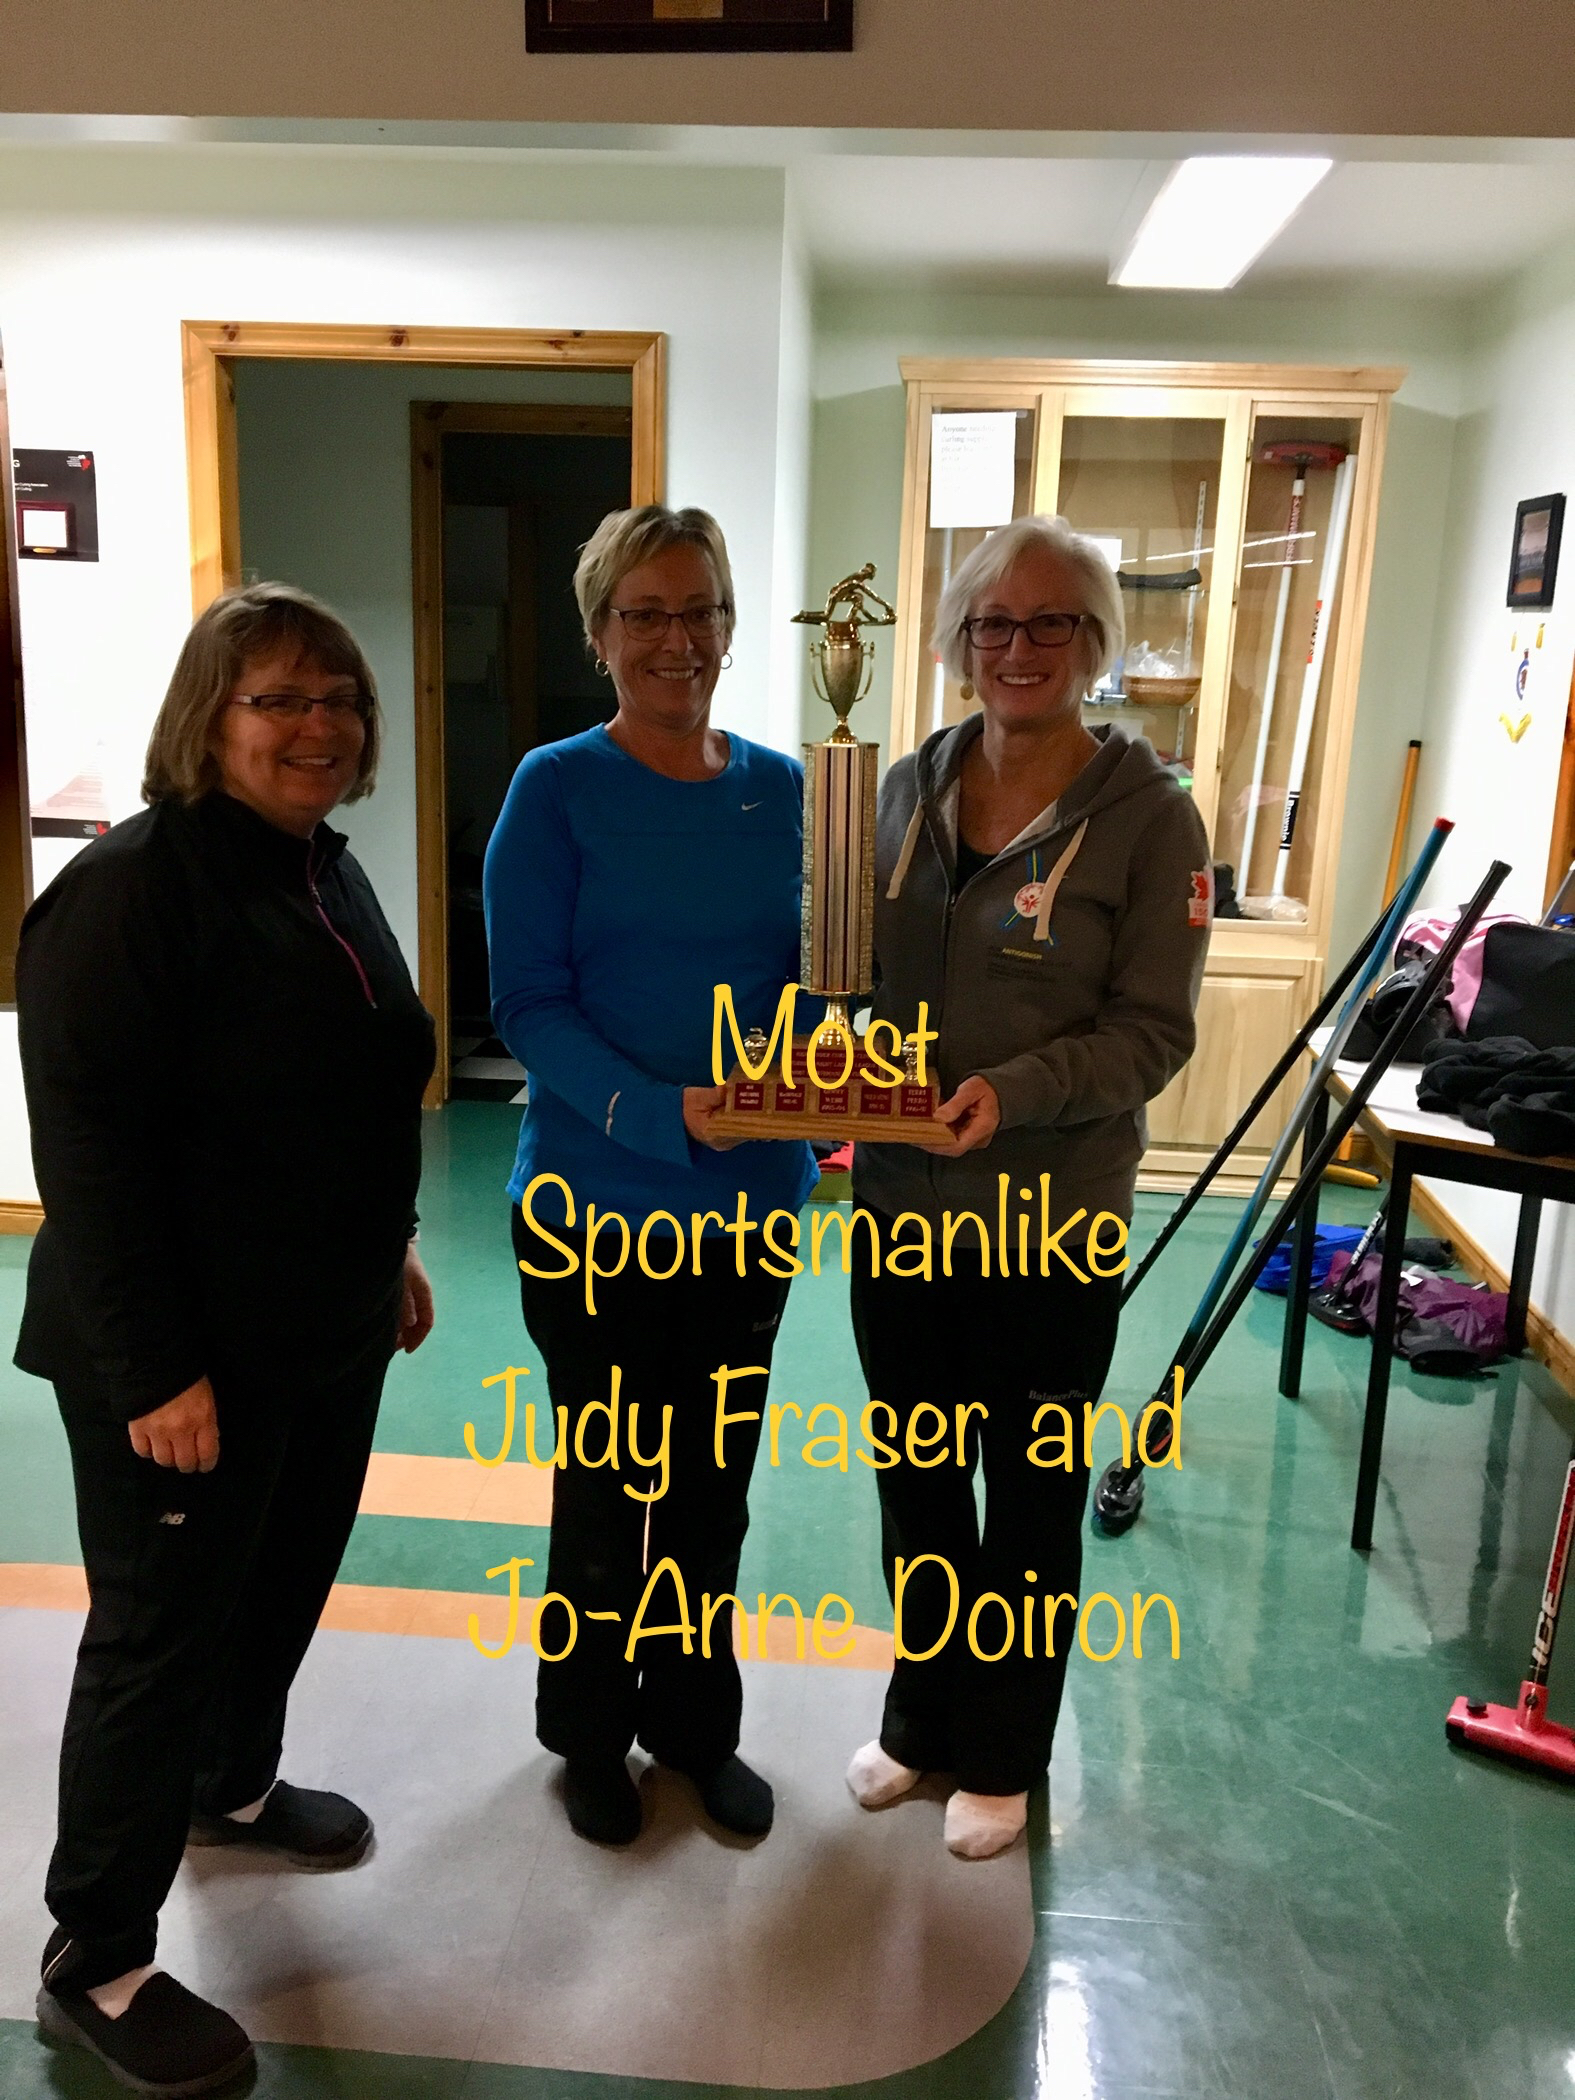 Tuesday Night Ladies Most Sportsmanlike: Judy Fraser (middle) and Joanne Doiron (right) Presented by Colleen MacDougall (left)